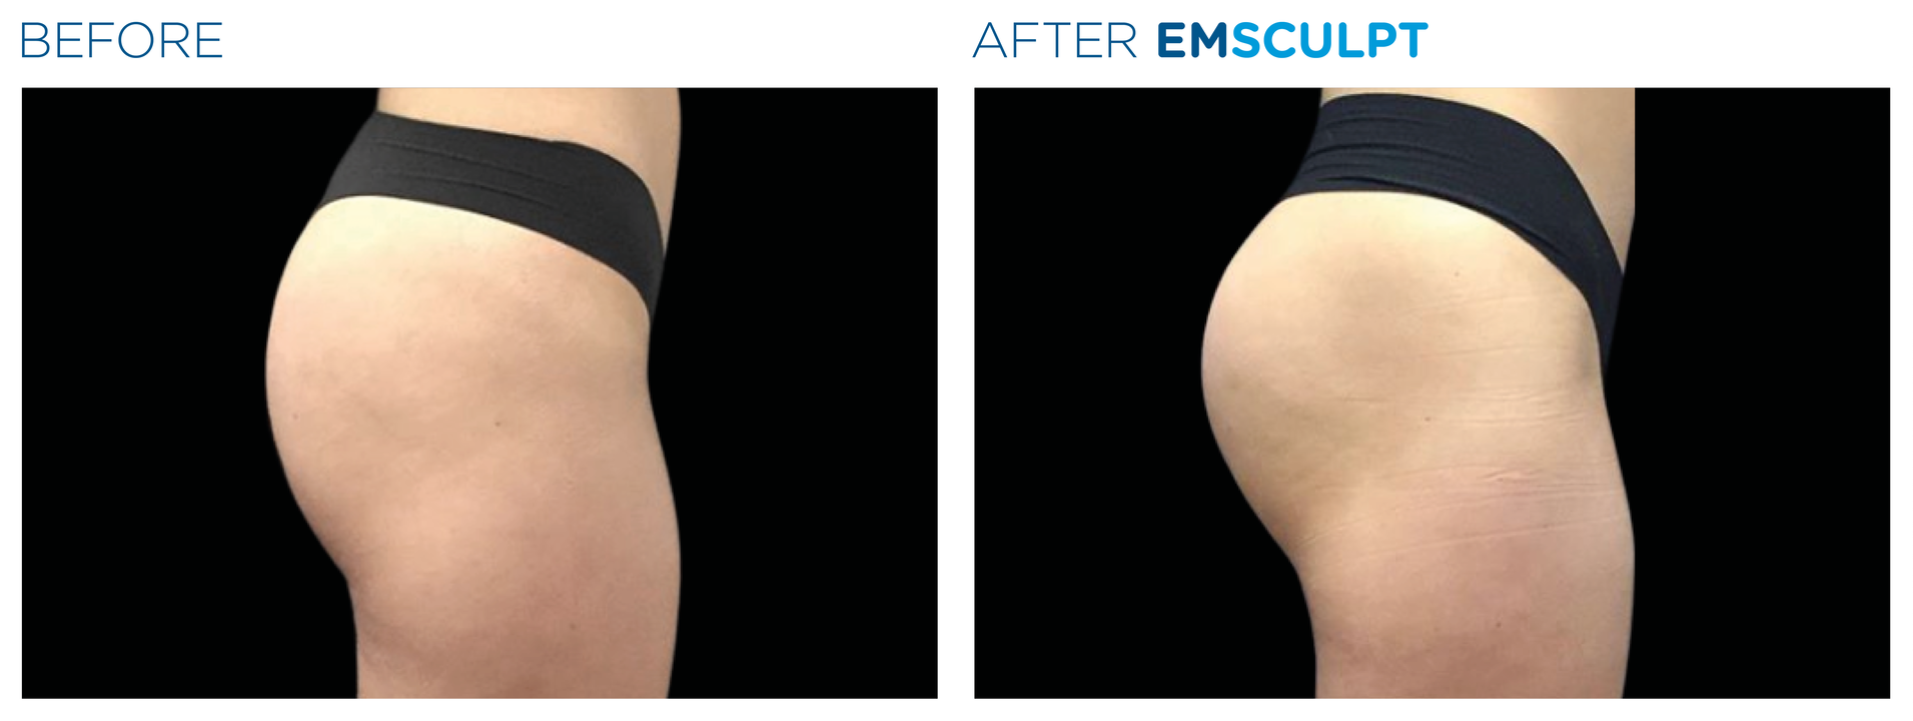 Emsculpt women buttocks definition before and after photo